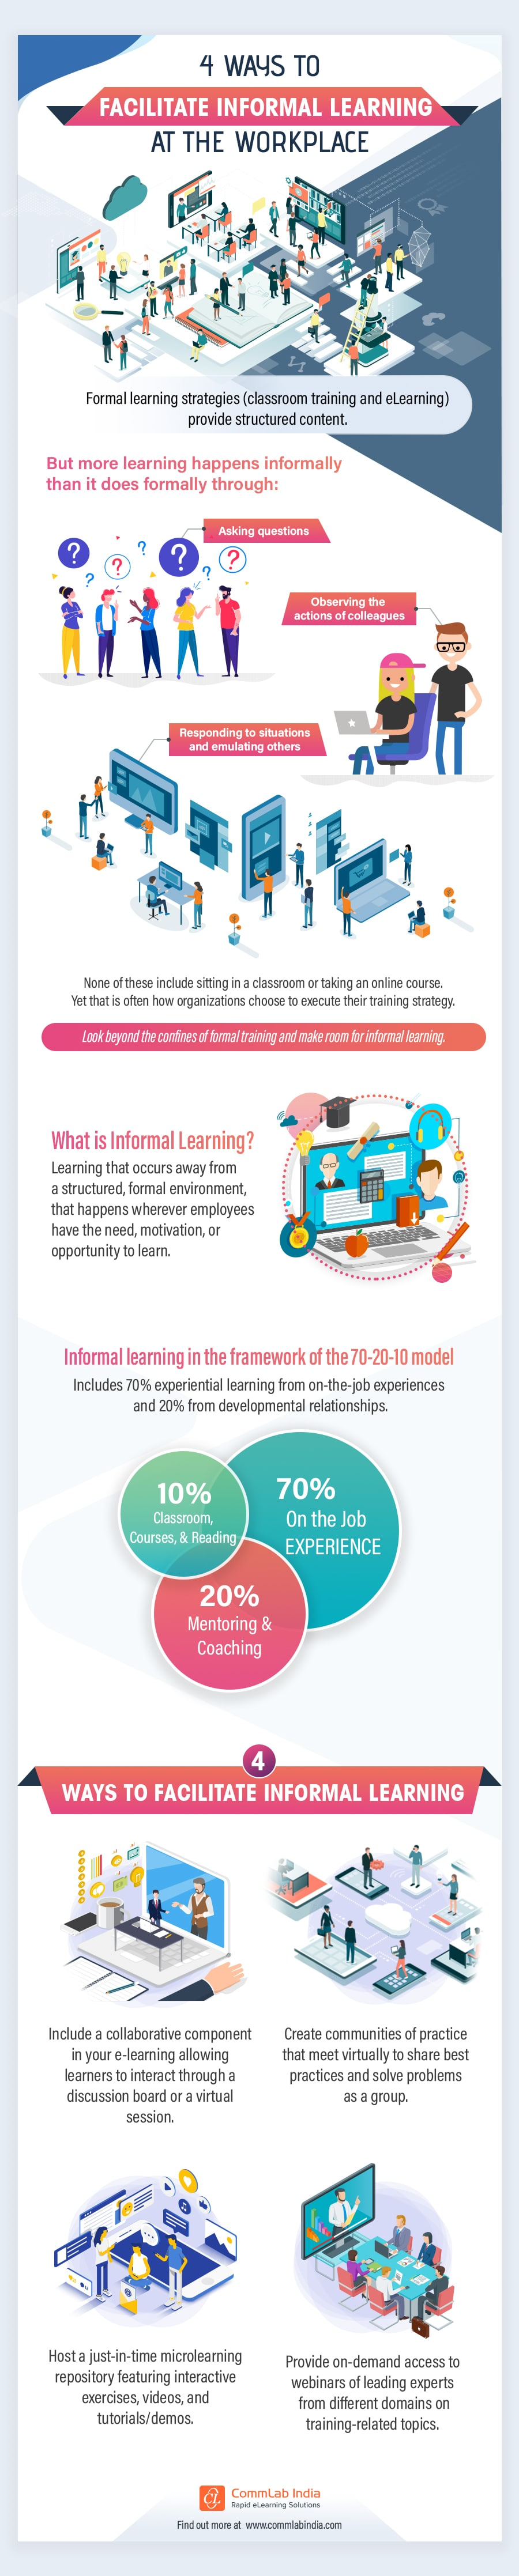 Informal Learning – Easy Tips to Move Beyond Formal Training